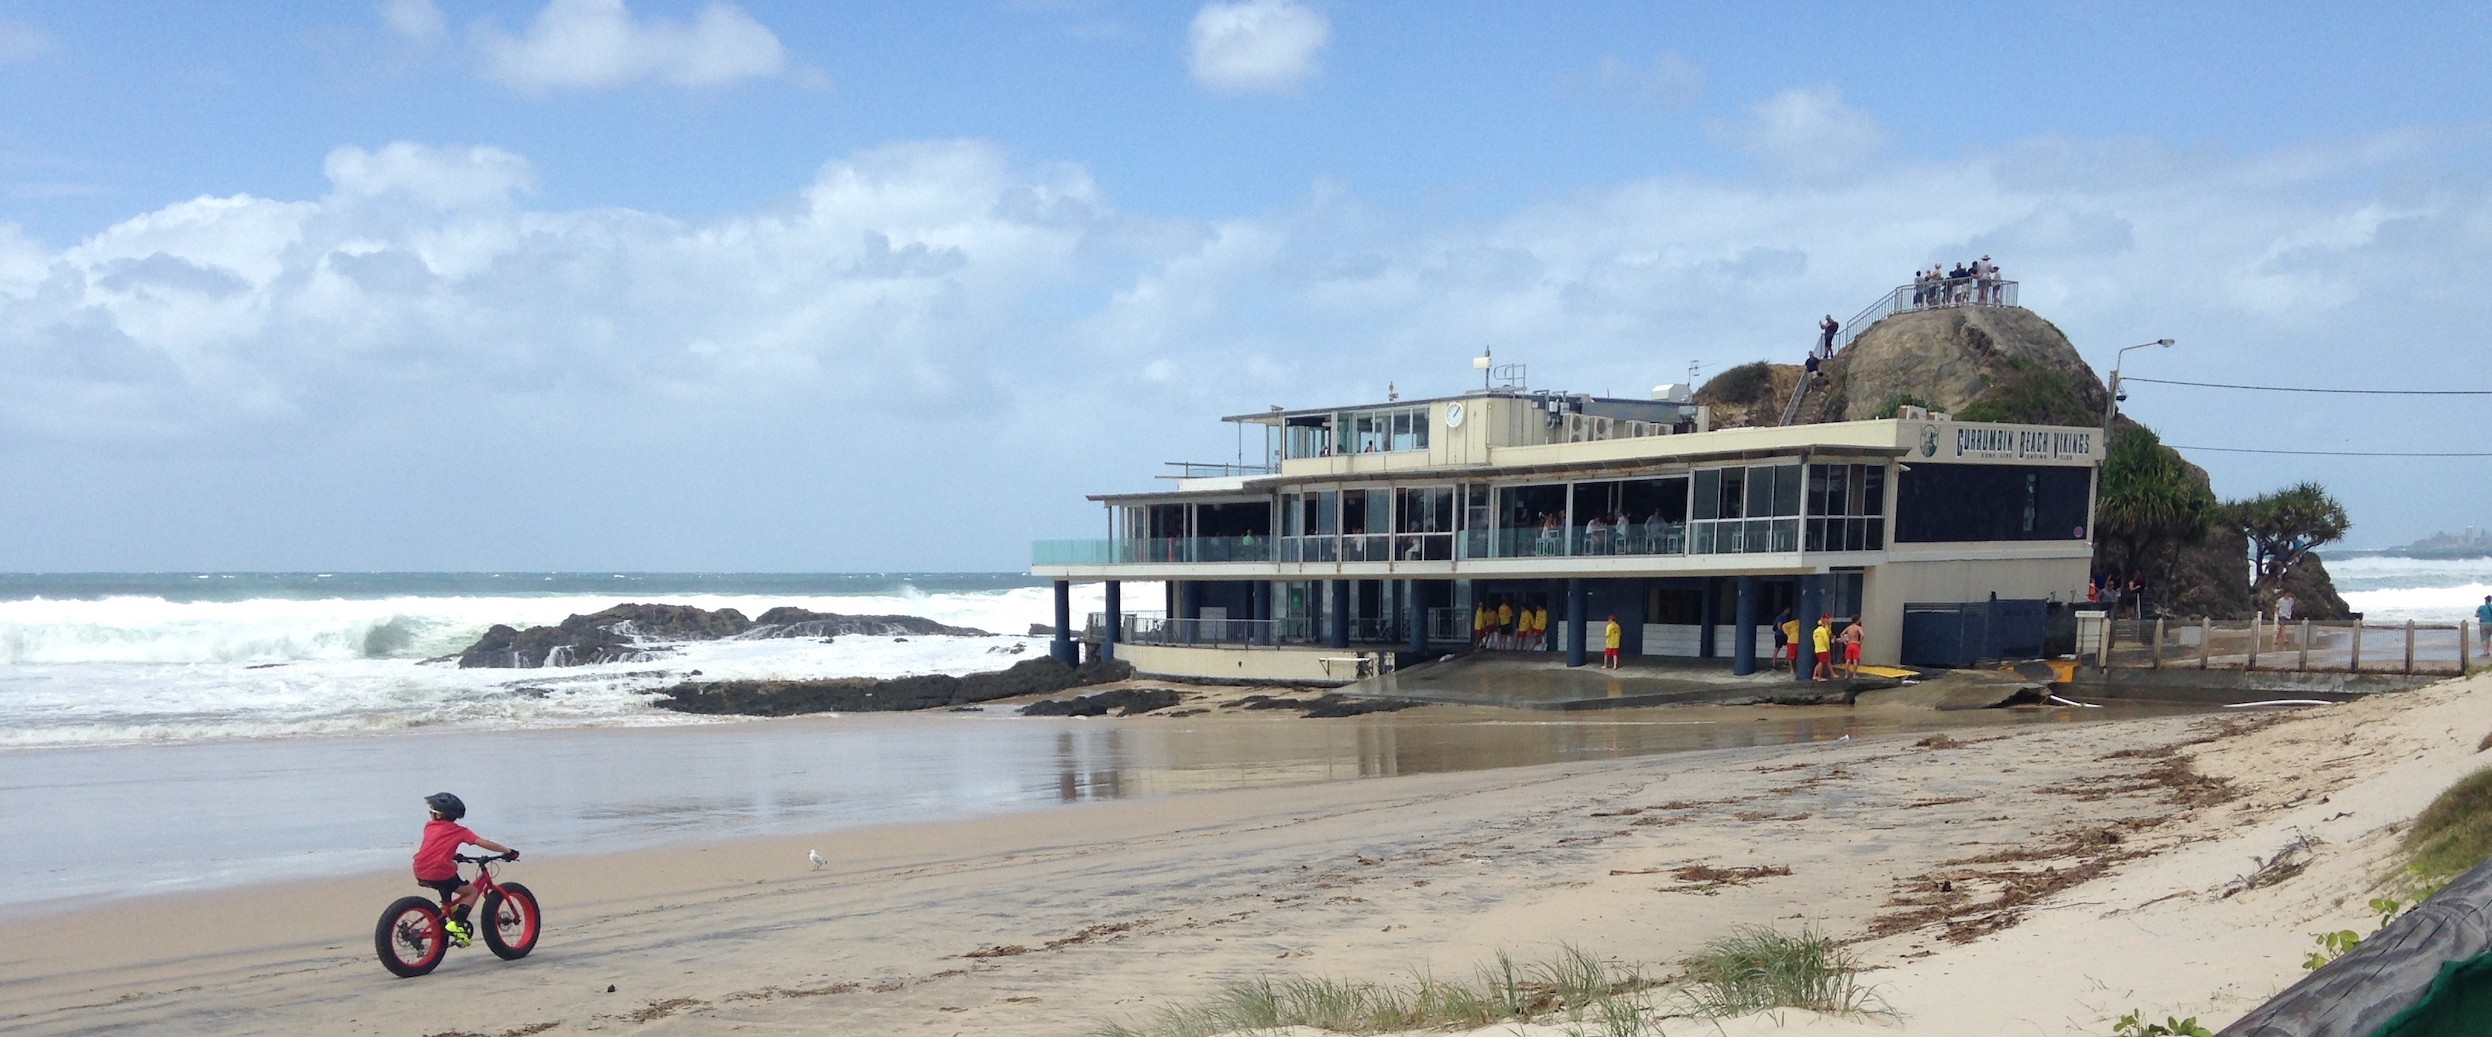 Riding into the wind as Currumbin Beach Vikings Surf Lifesavers gather at their clubhouse amid wild waves.